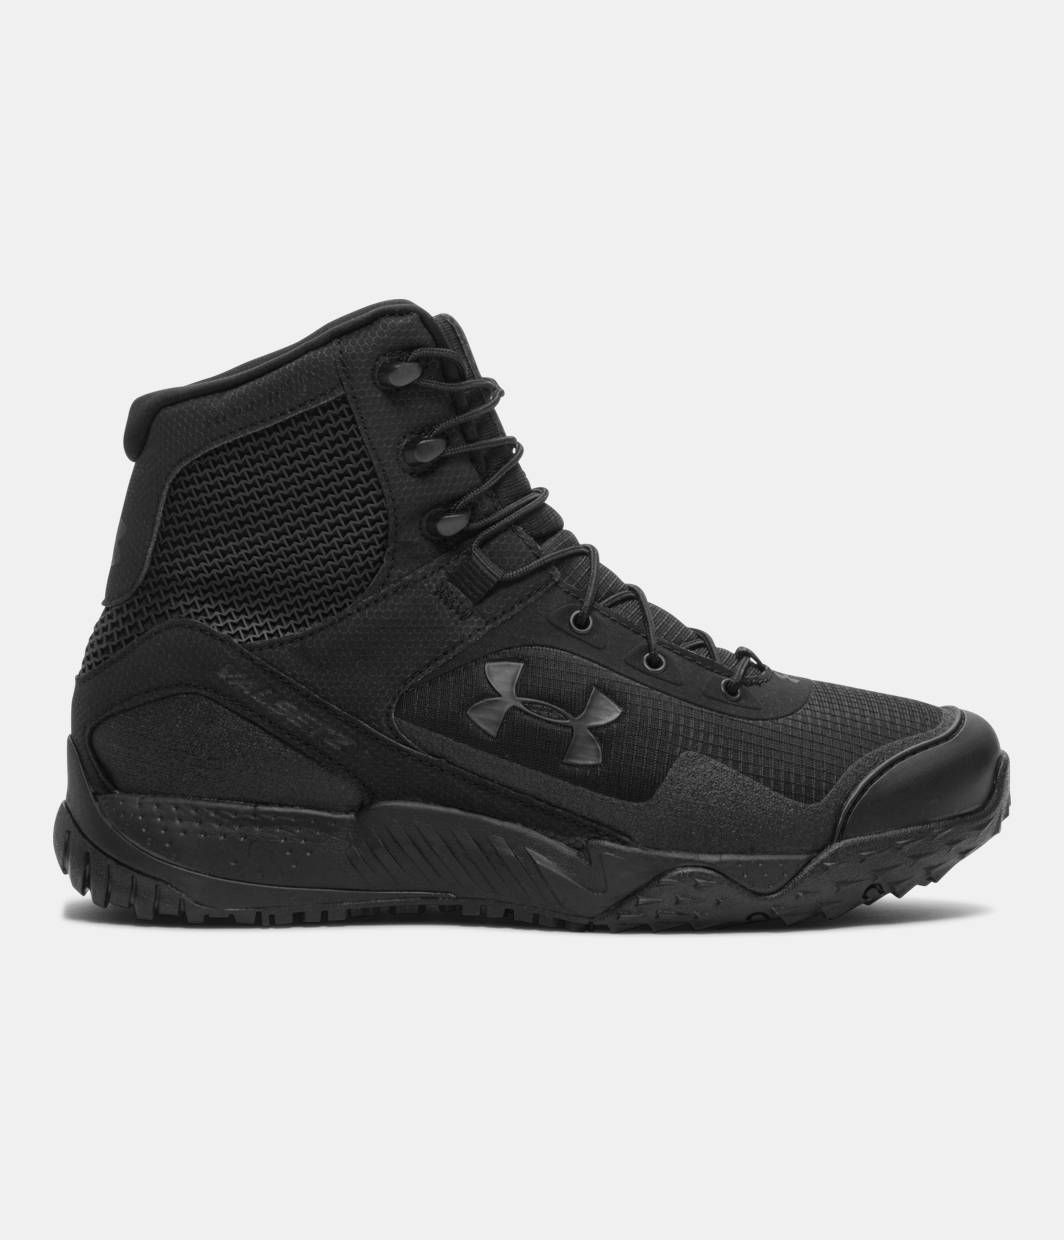 Under Armour Men's UA Valsetz RTS Tactical Boots with Lightweight TPU Shank and Molded Sockliner